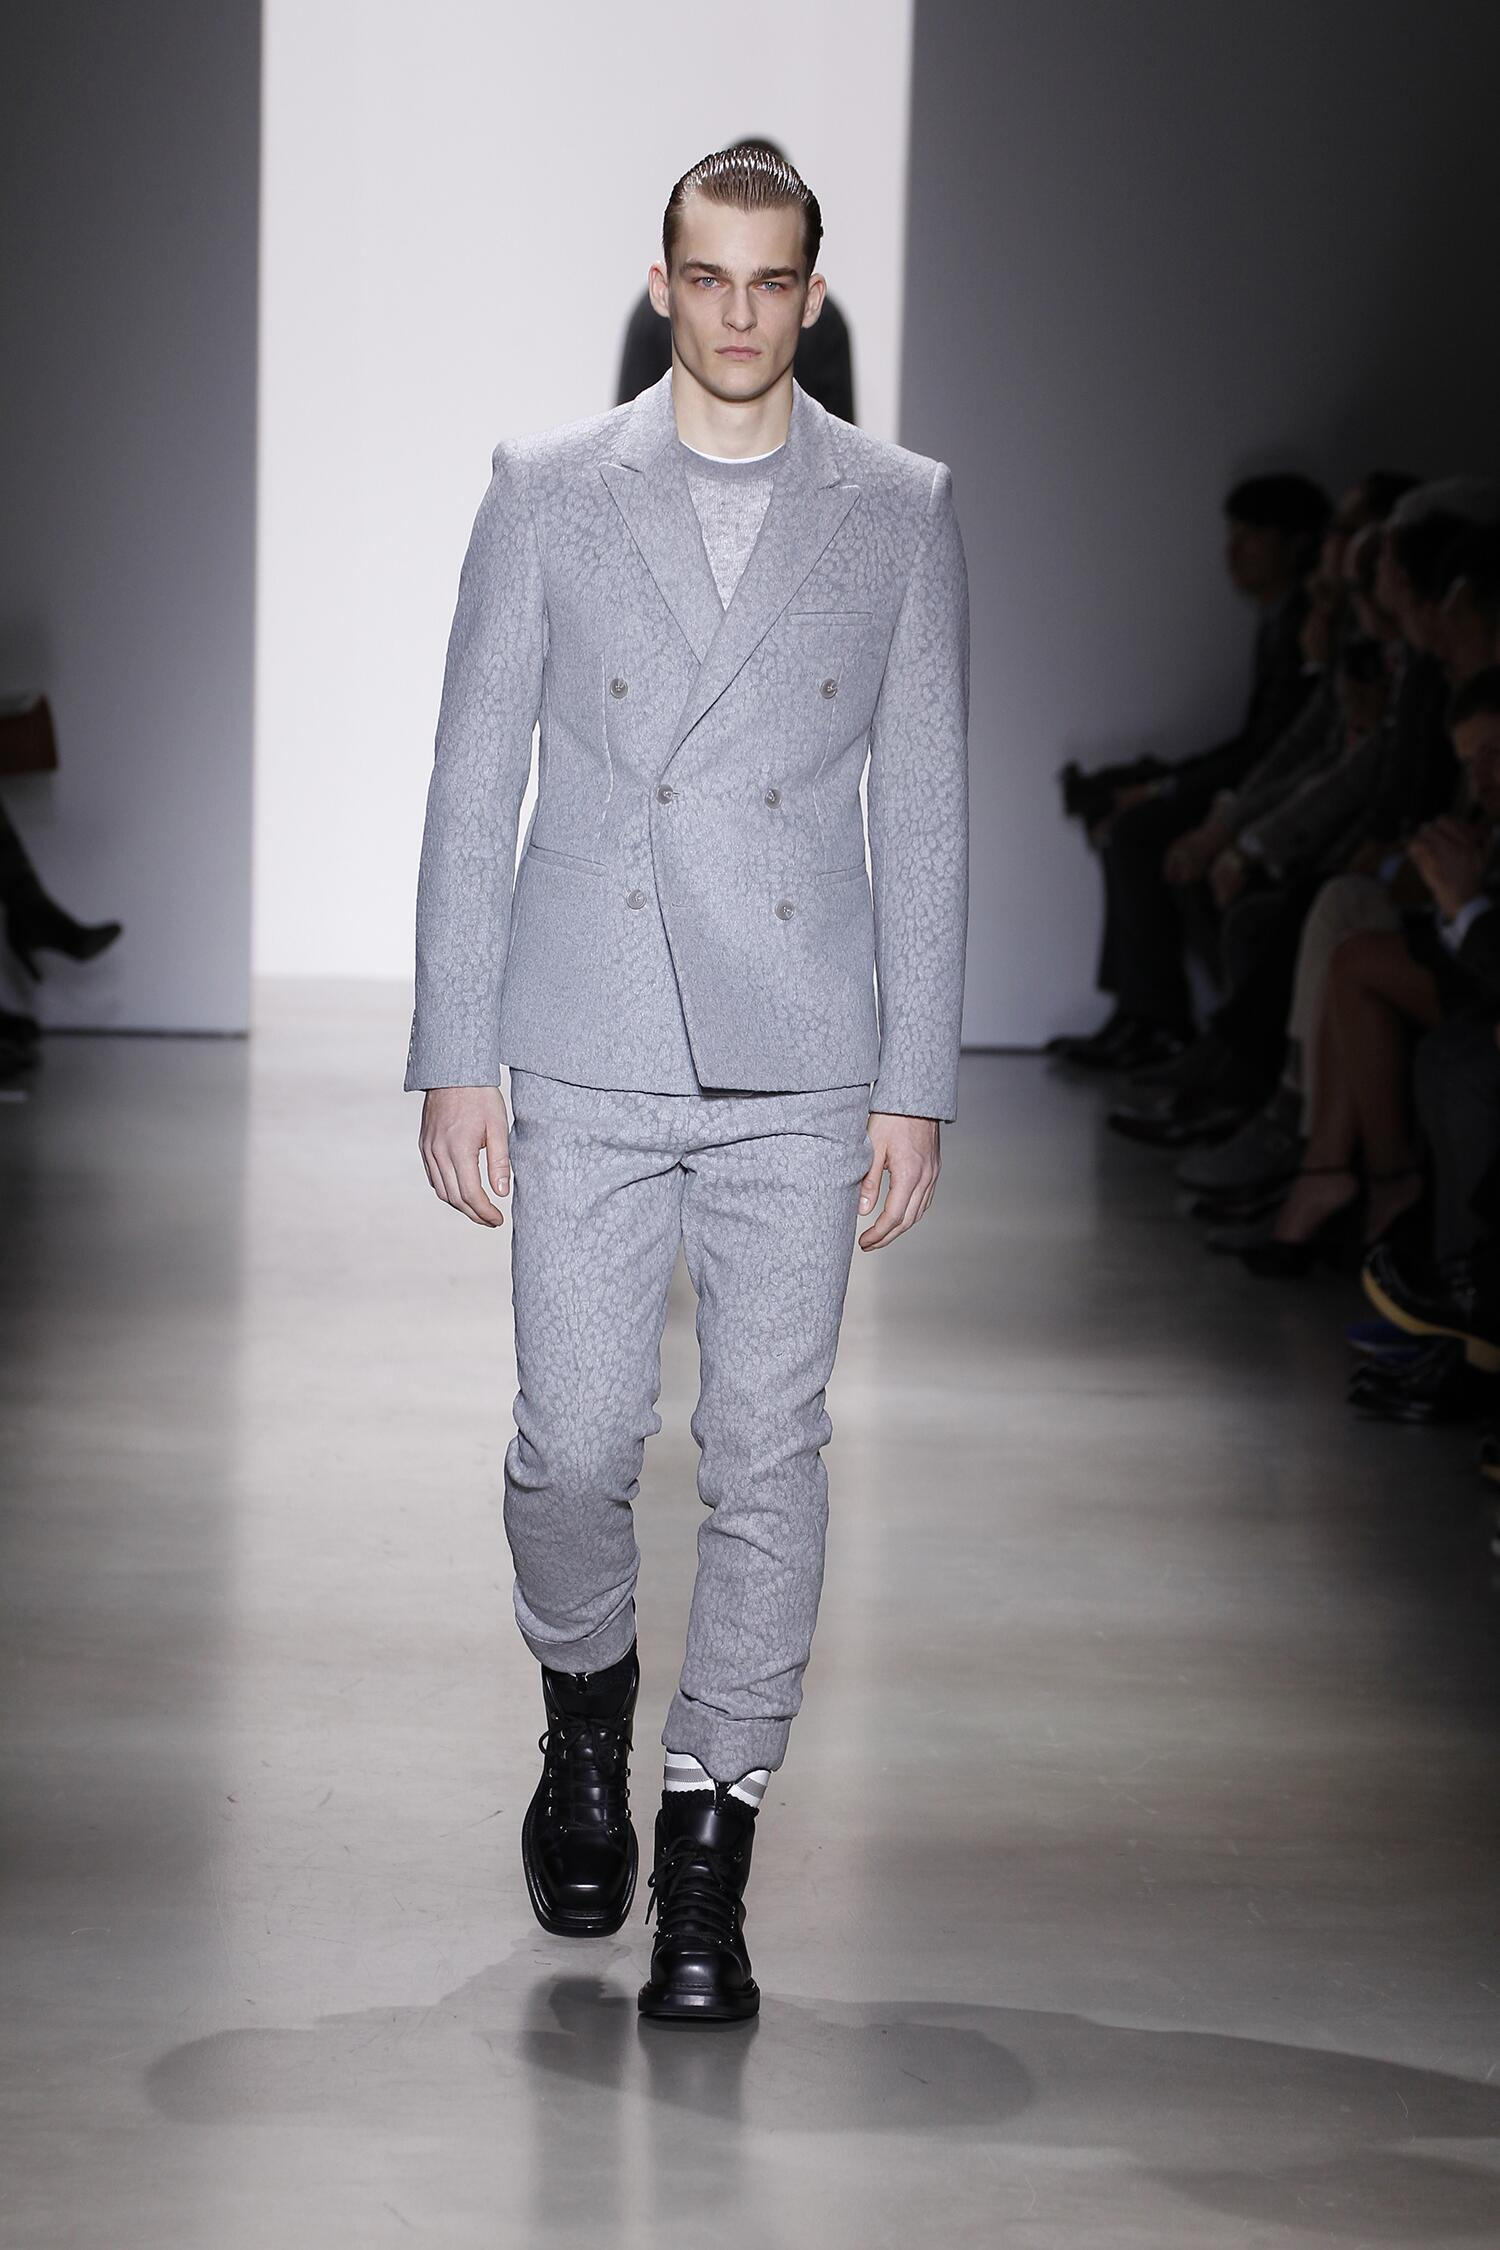 Calvin Klein Fall Winter 2015 16 Men's Collection Milan Fashion Week Fashion Show